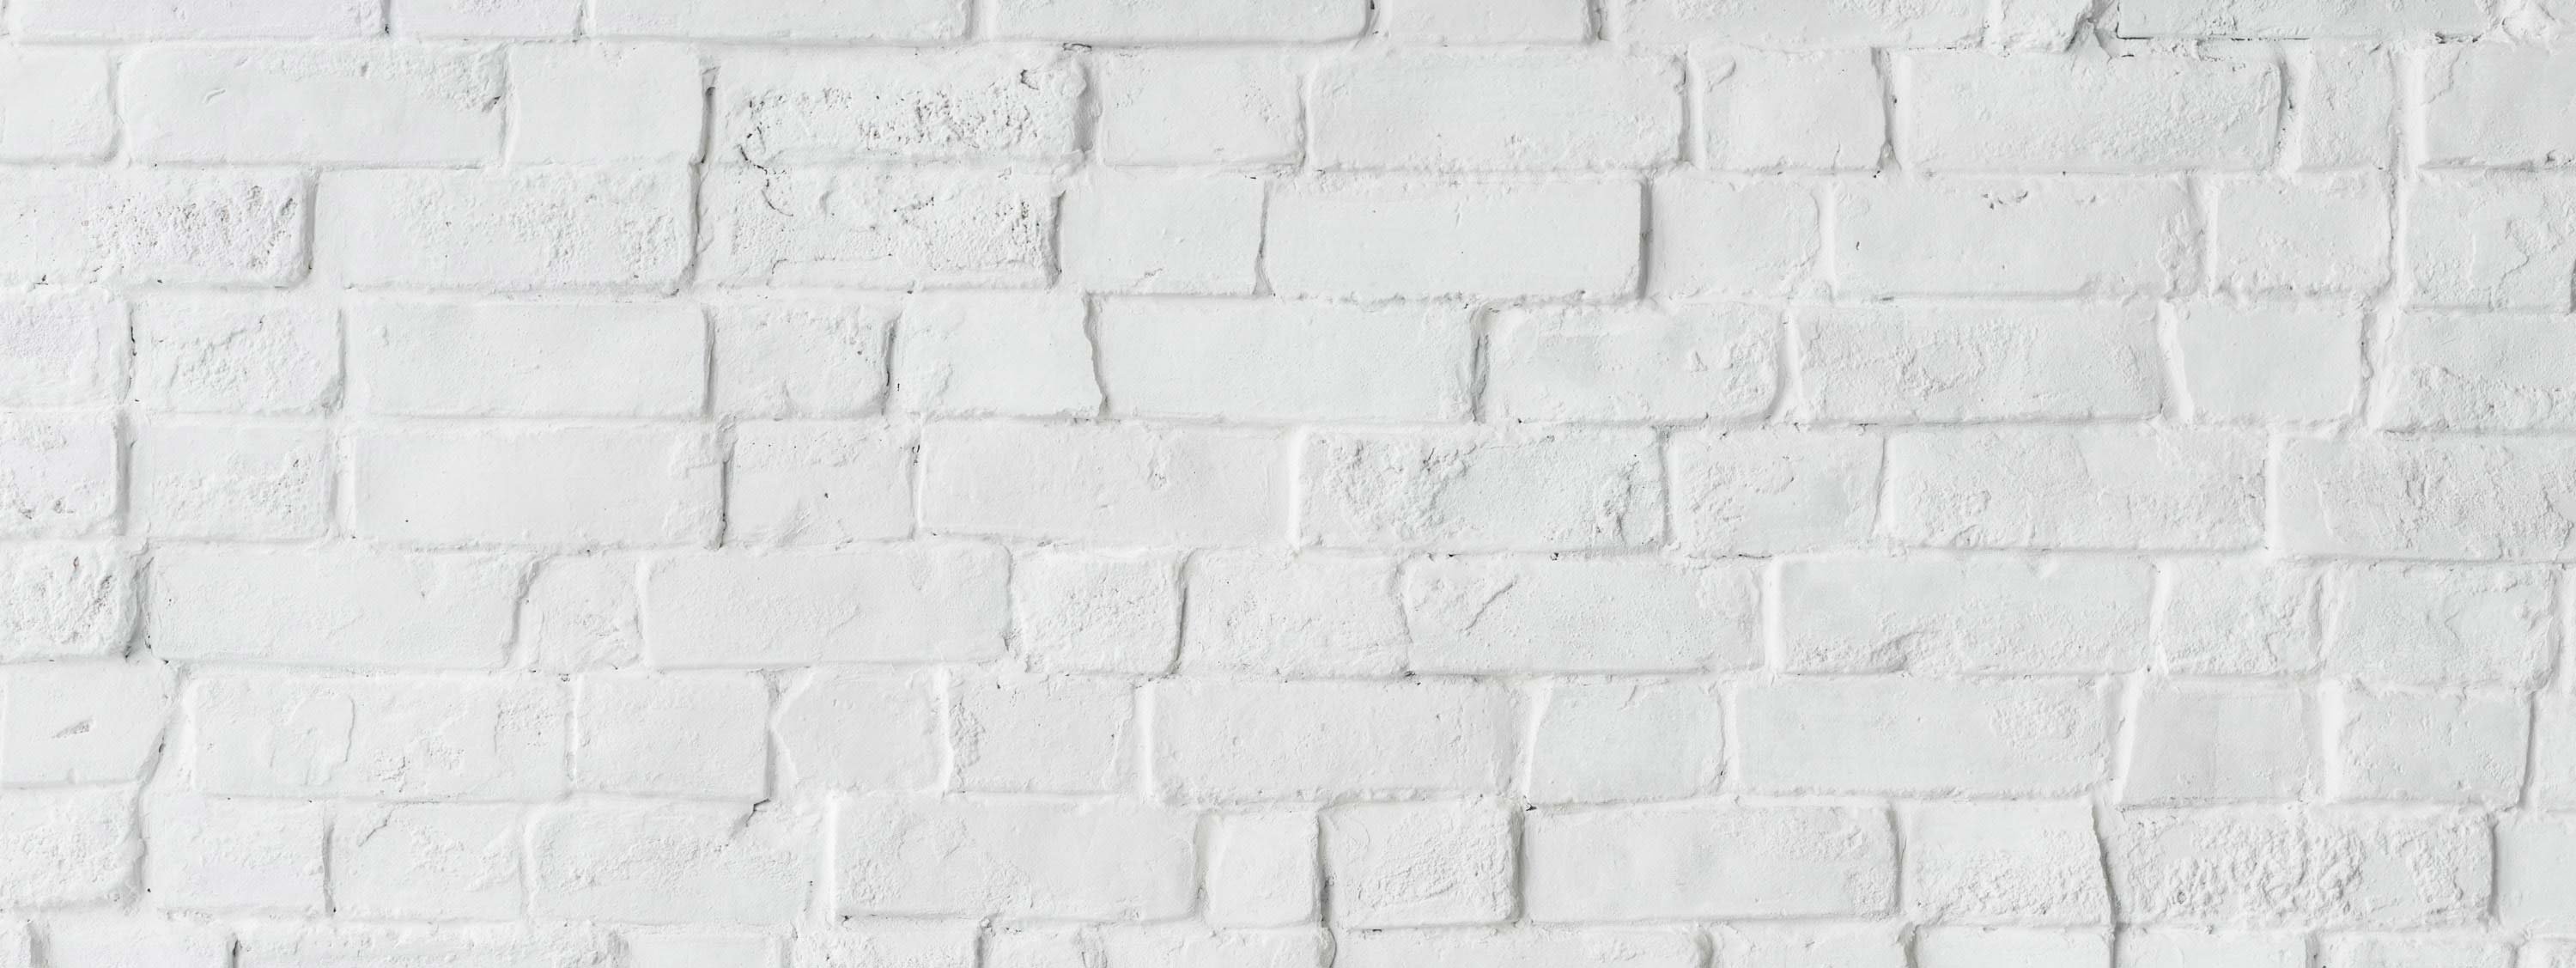 A plain, white brick background.